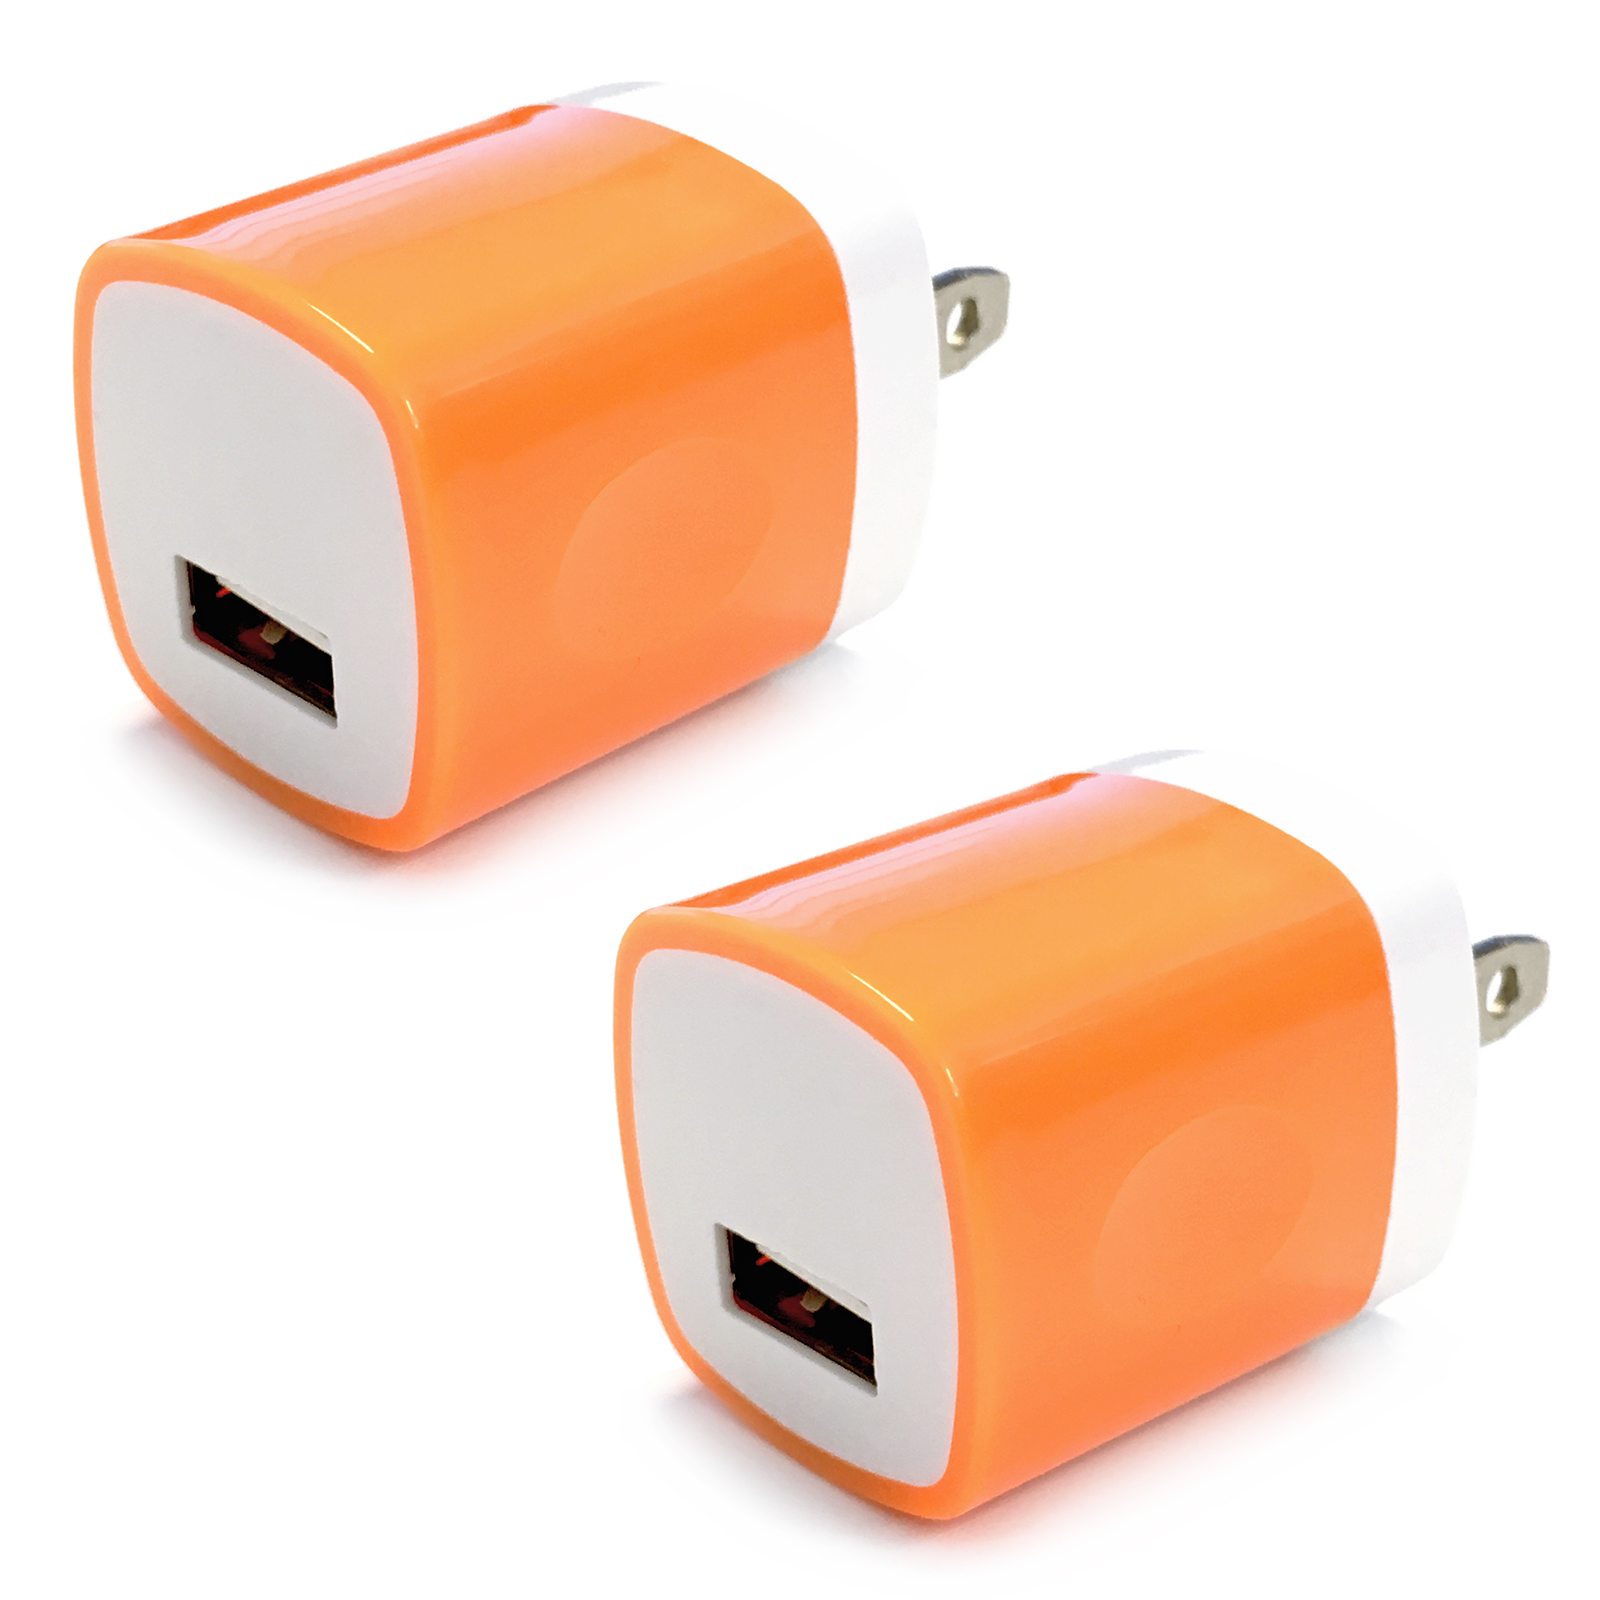 2x USB Wall Charger, Charger Adapter, FREEDOMTECH 1Amp Single Port Quick Charger Plug Cube for iPhone 7/6S/6S Plus/6 Plus/6/5S/5, Samsung Galaxy S7/S6/S5 Edge, LG, HTC, Huawei, Moto, Kindle and More